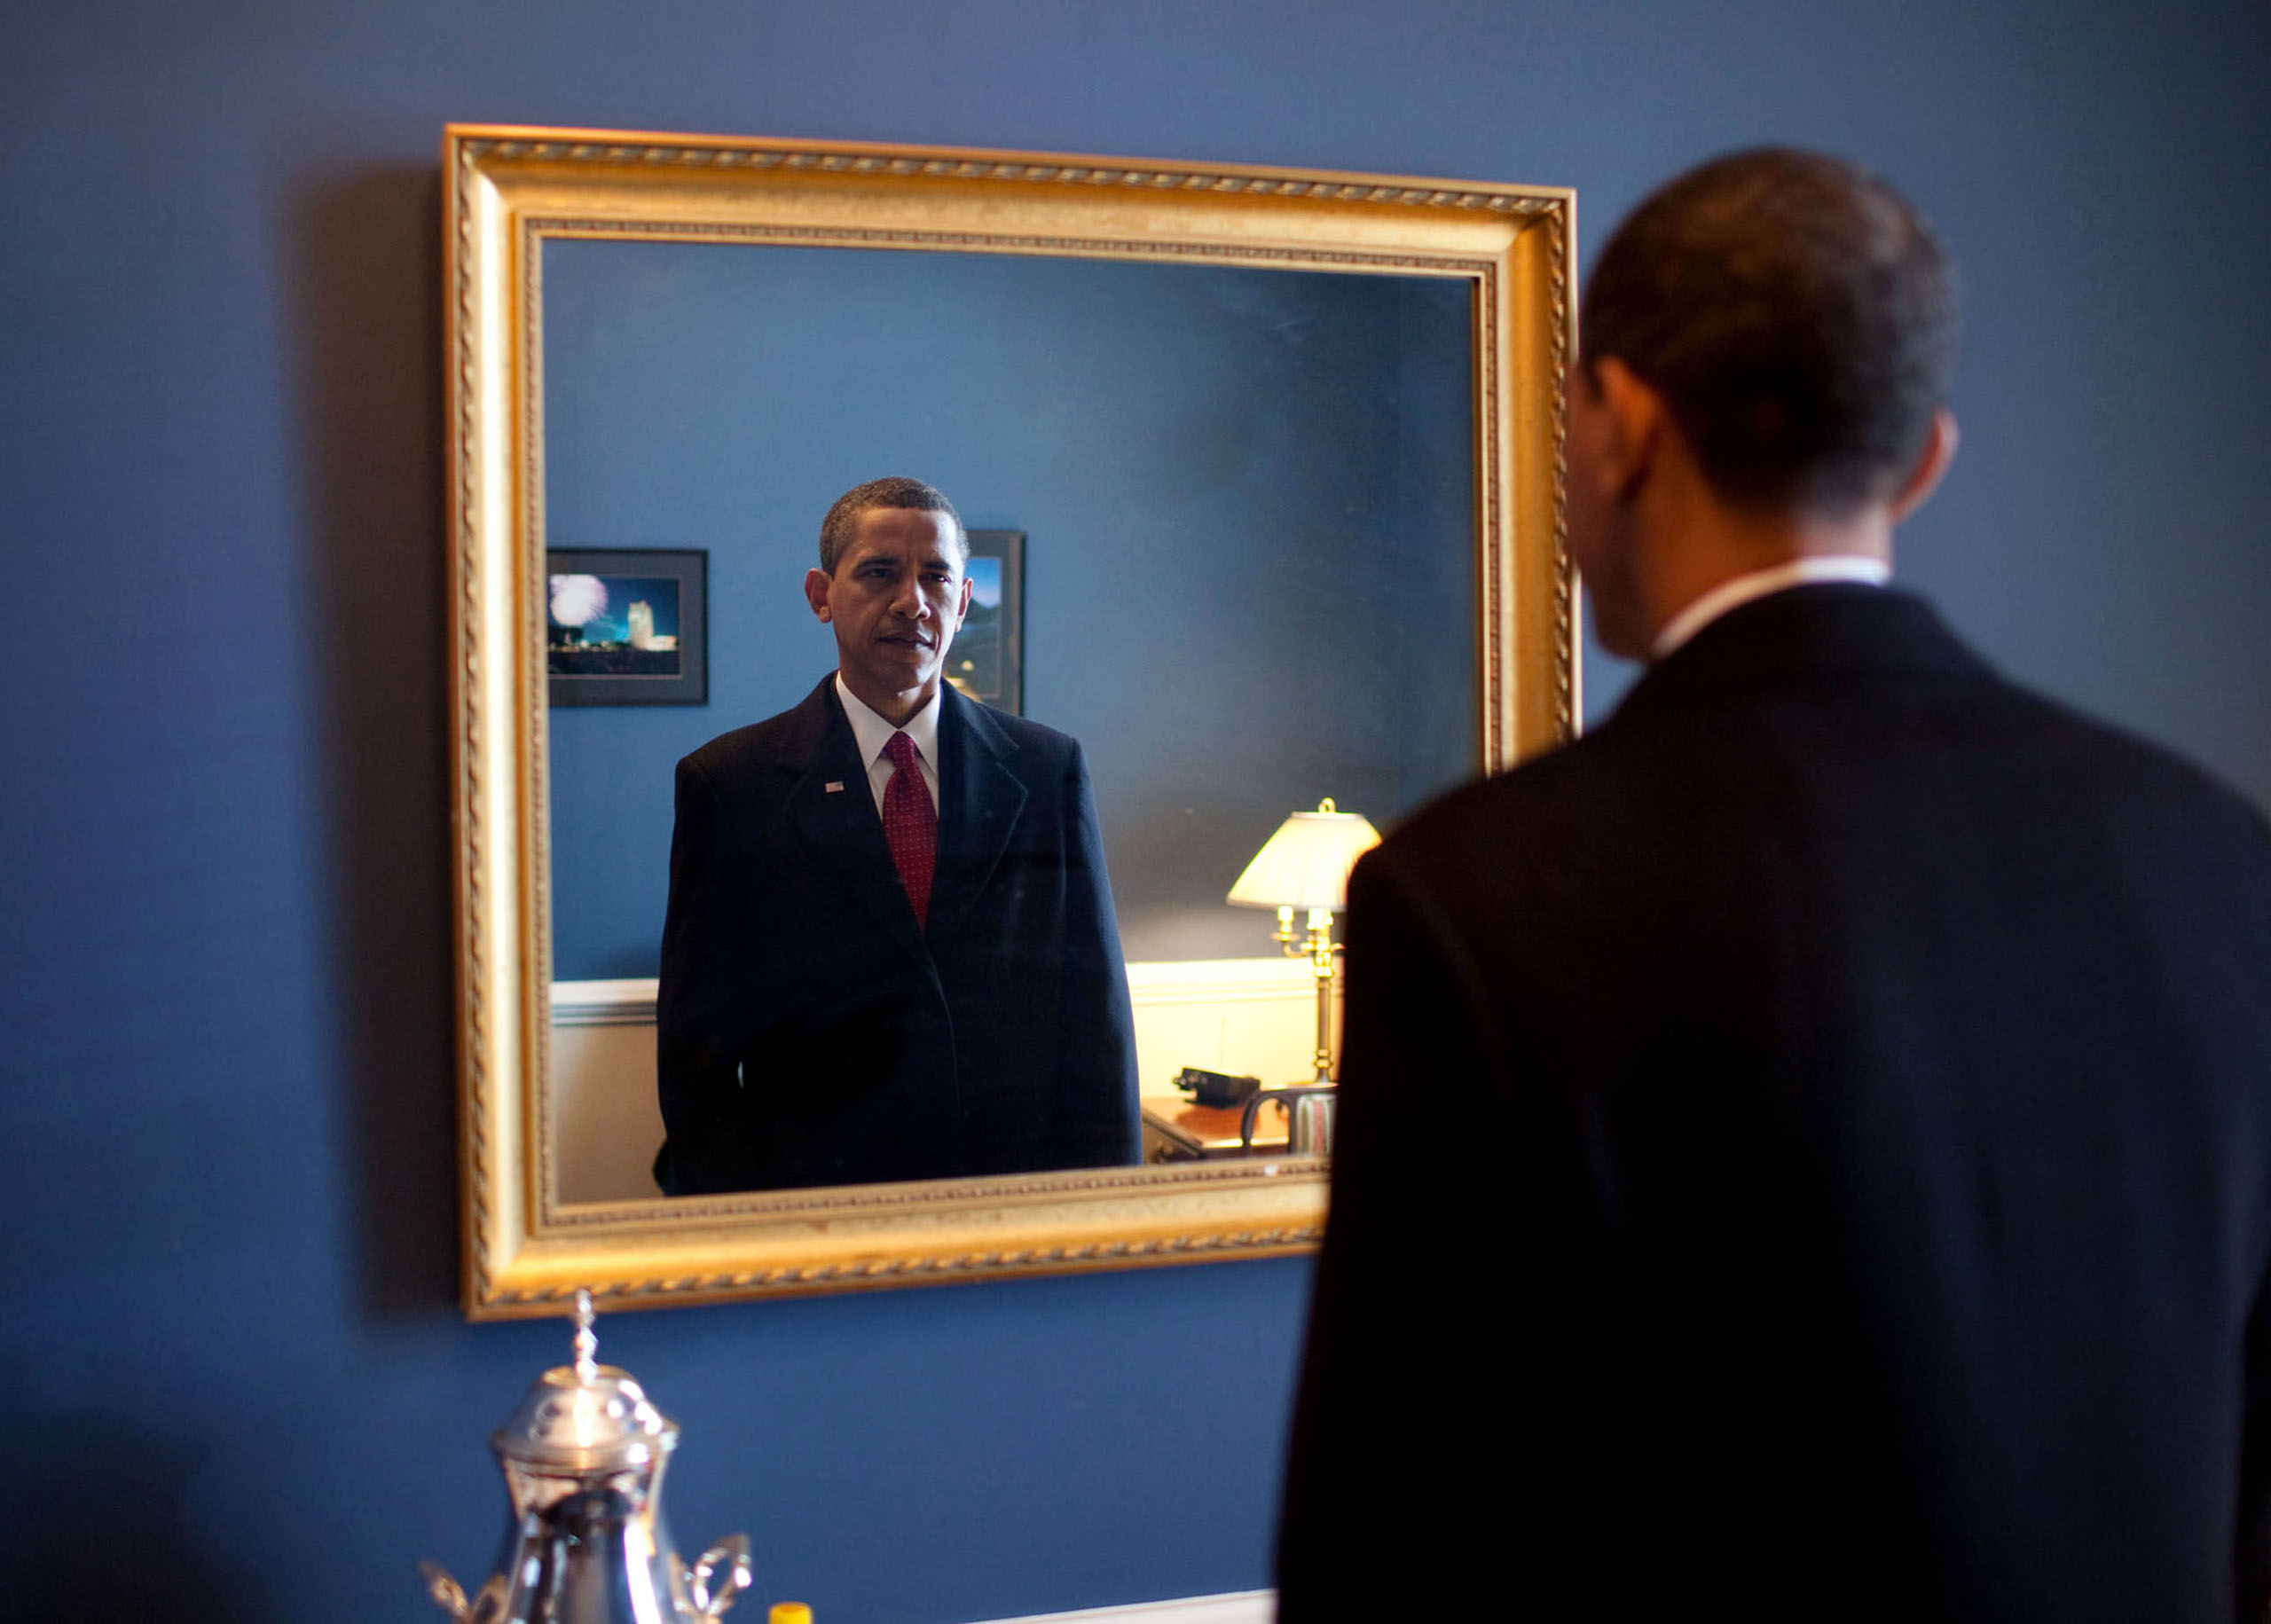 """""""President-elect Barack Obama was about to walk out to take the oath of office. Backstage at the U.S. Capitol, he took one last look at his appearance in the mirror,""""Jan. 20, 2009."""